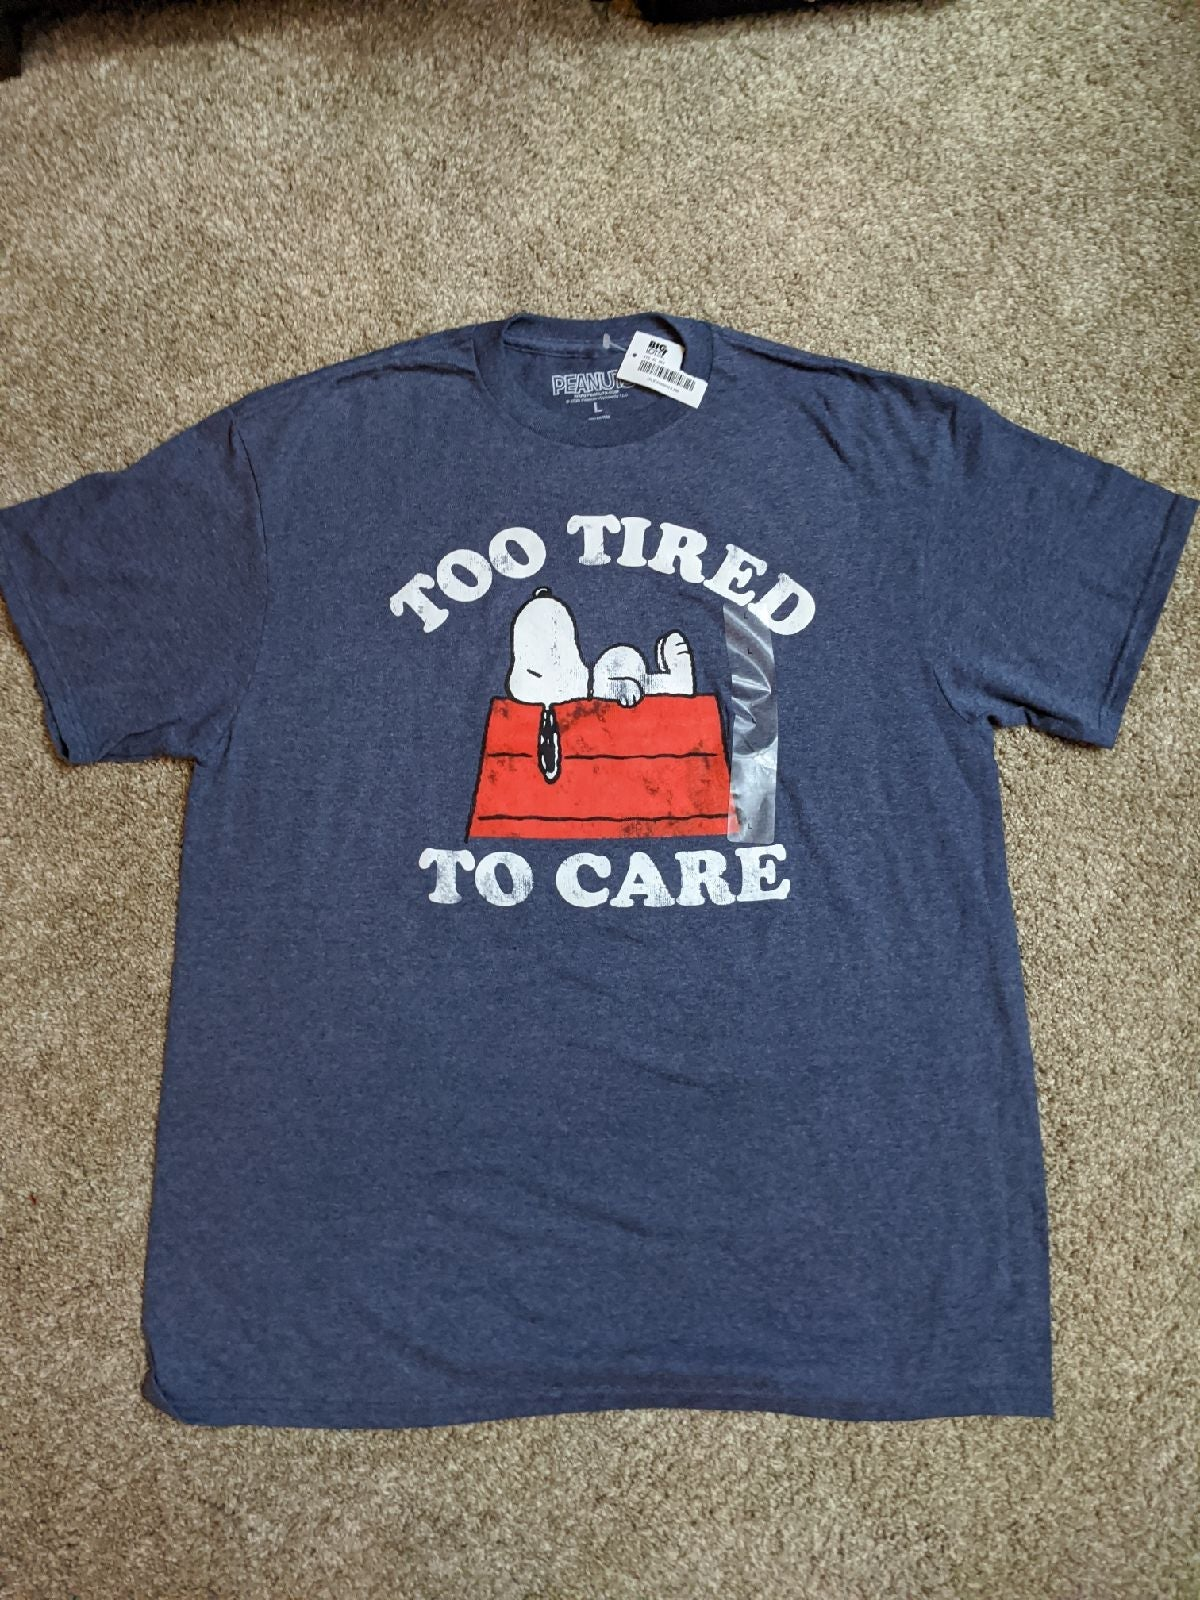 Peanuts Snoopy Too Tired to Care T-Shirt